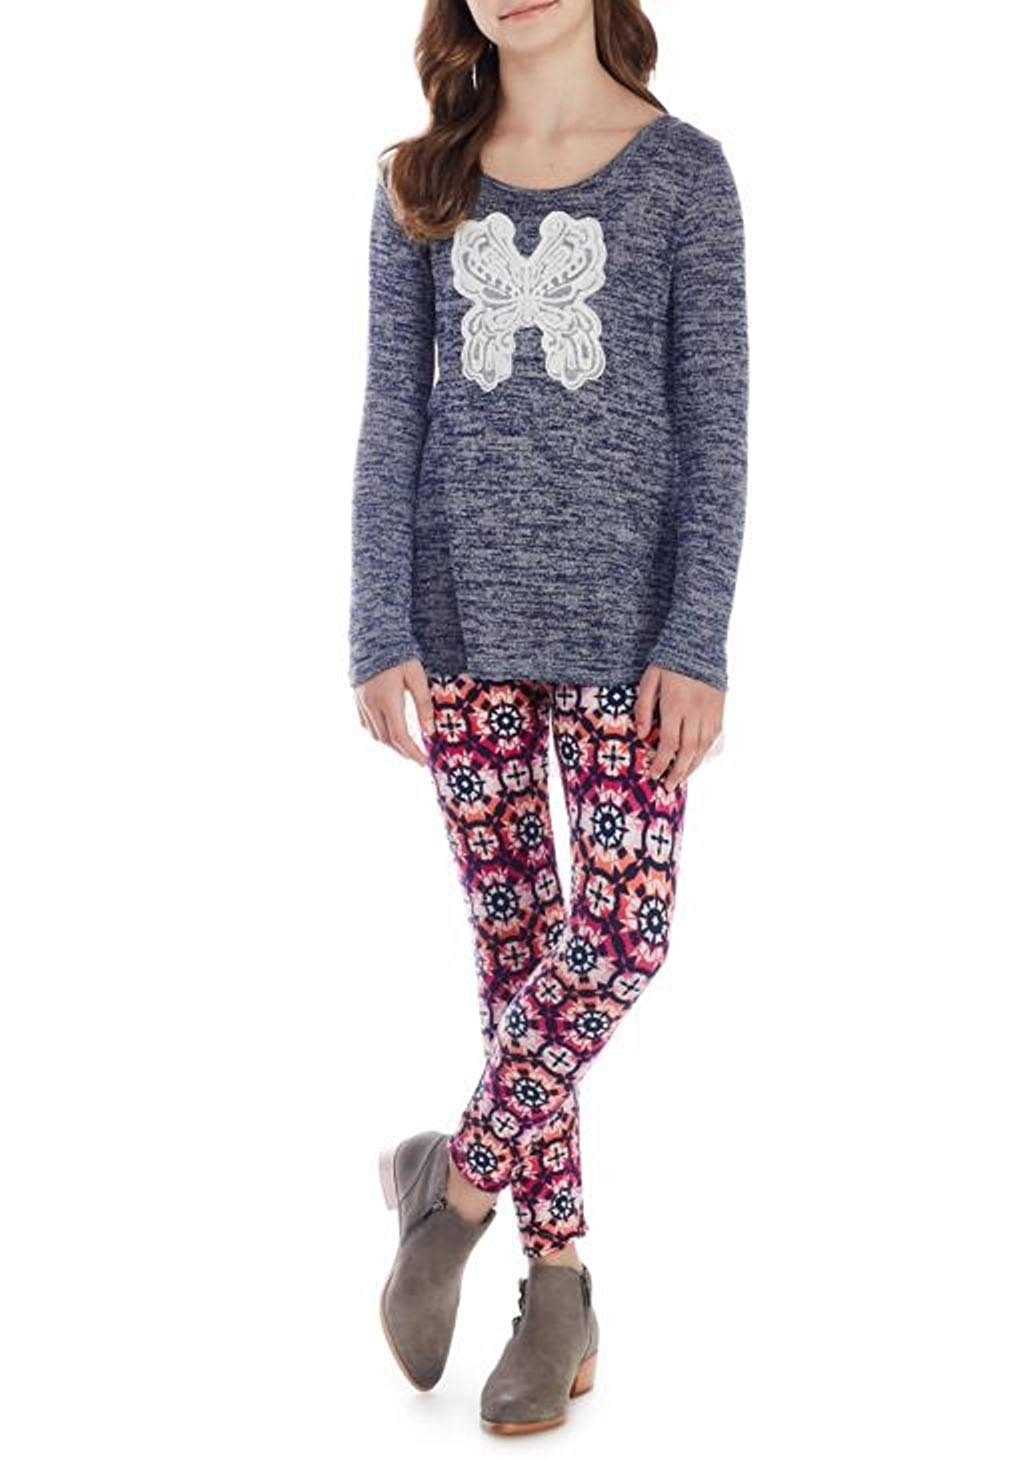 Get Quotations · One Step Up 2-Piece Hacci Tunic and Leggings Set Girls 7-16 6ed78fc79